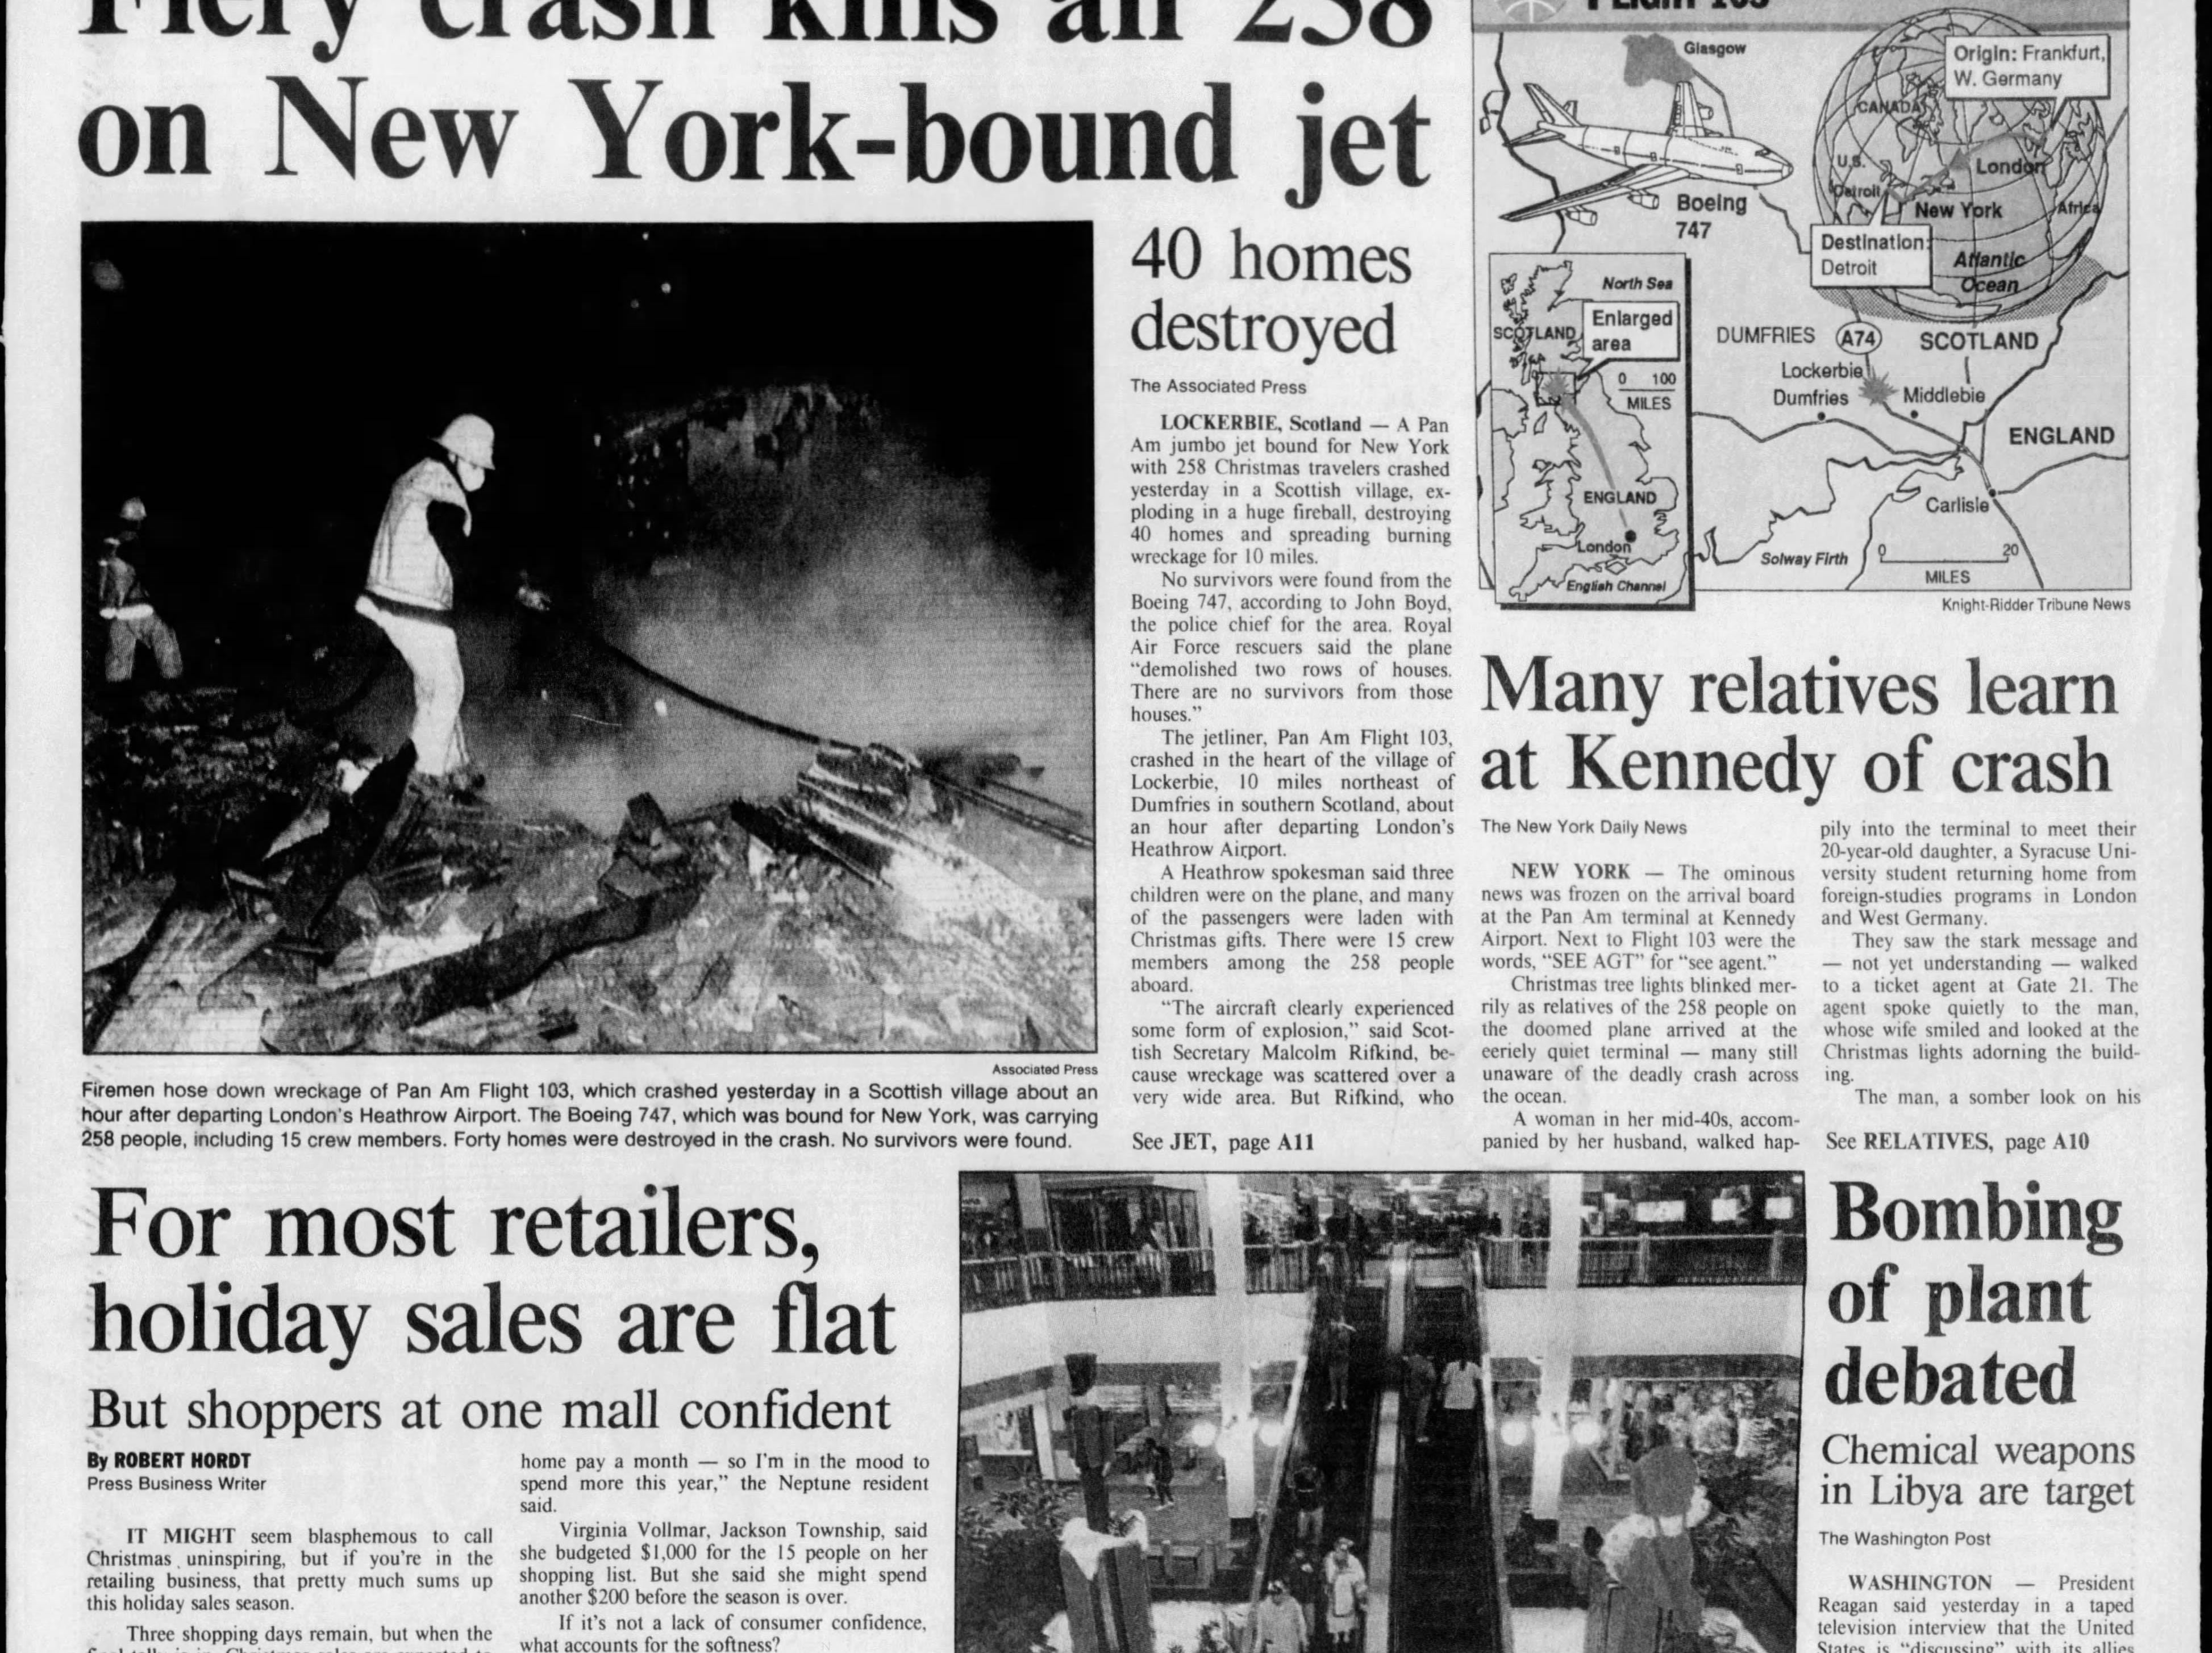 Pan Am Flight 103 is bombed out of the night sky 31,000 feet over Lockerbie, Scotland, killing what would later turn out to be 259 people aboard the Boeing 747 en route to New York from London, and 11 people on the ground in what was then the deadliest terrorist attack ever on American civilians. This edition the next day was published for Thursday, Dec. 22, 1988.